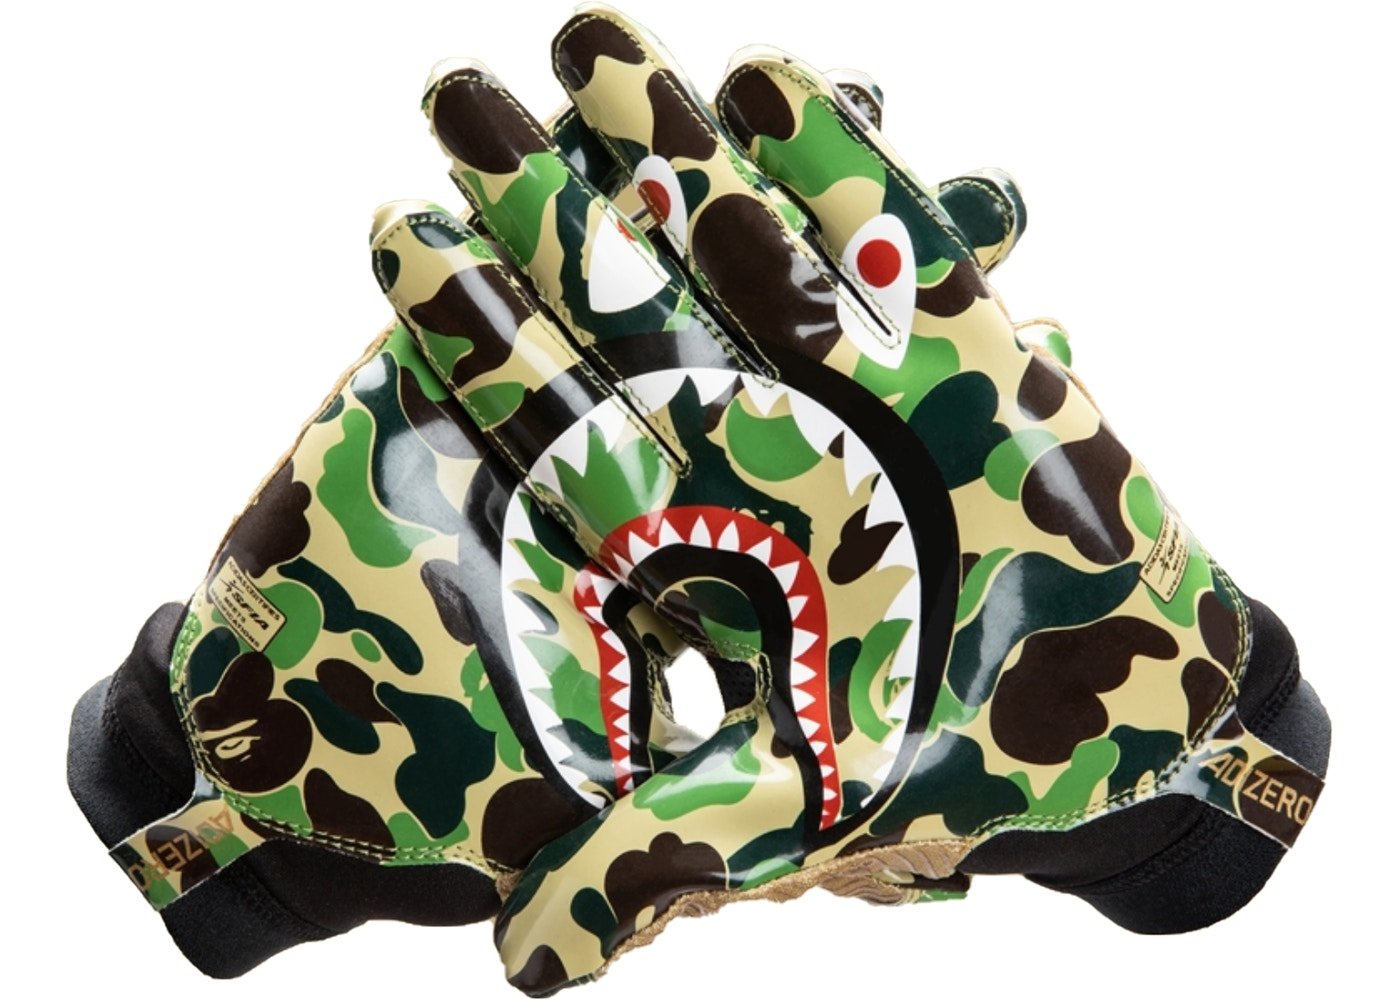 cheaper 834c7 5b5eb BAPE x Adidas Adizero 8.0 Gloves Green